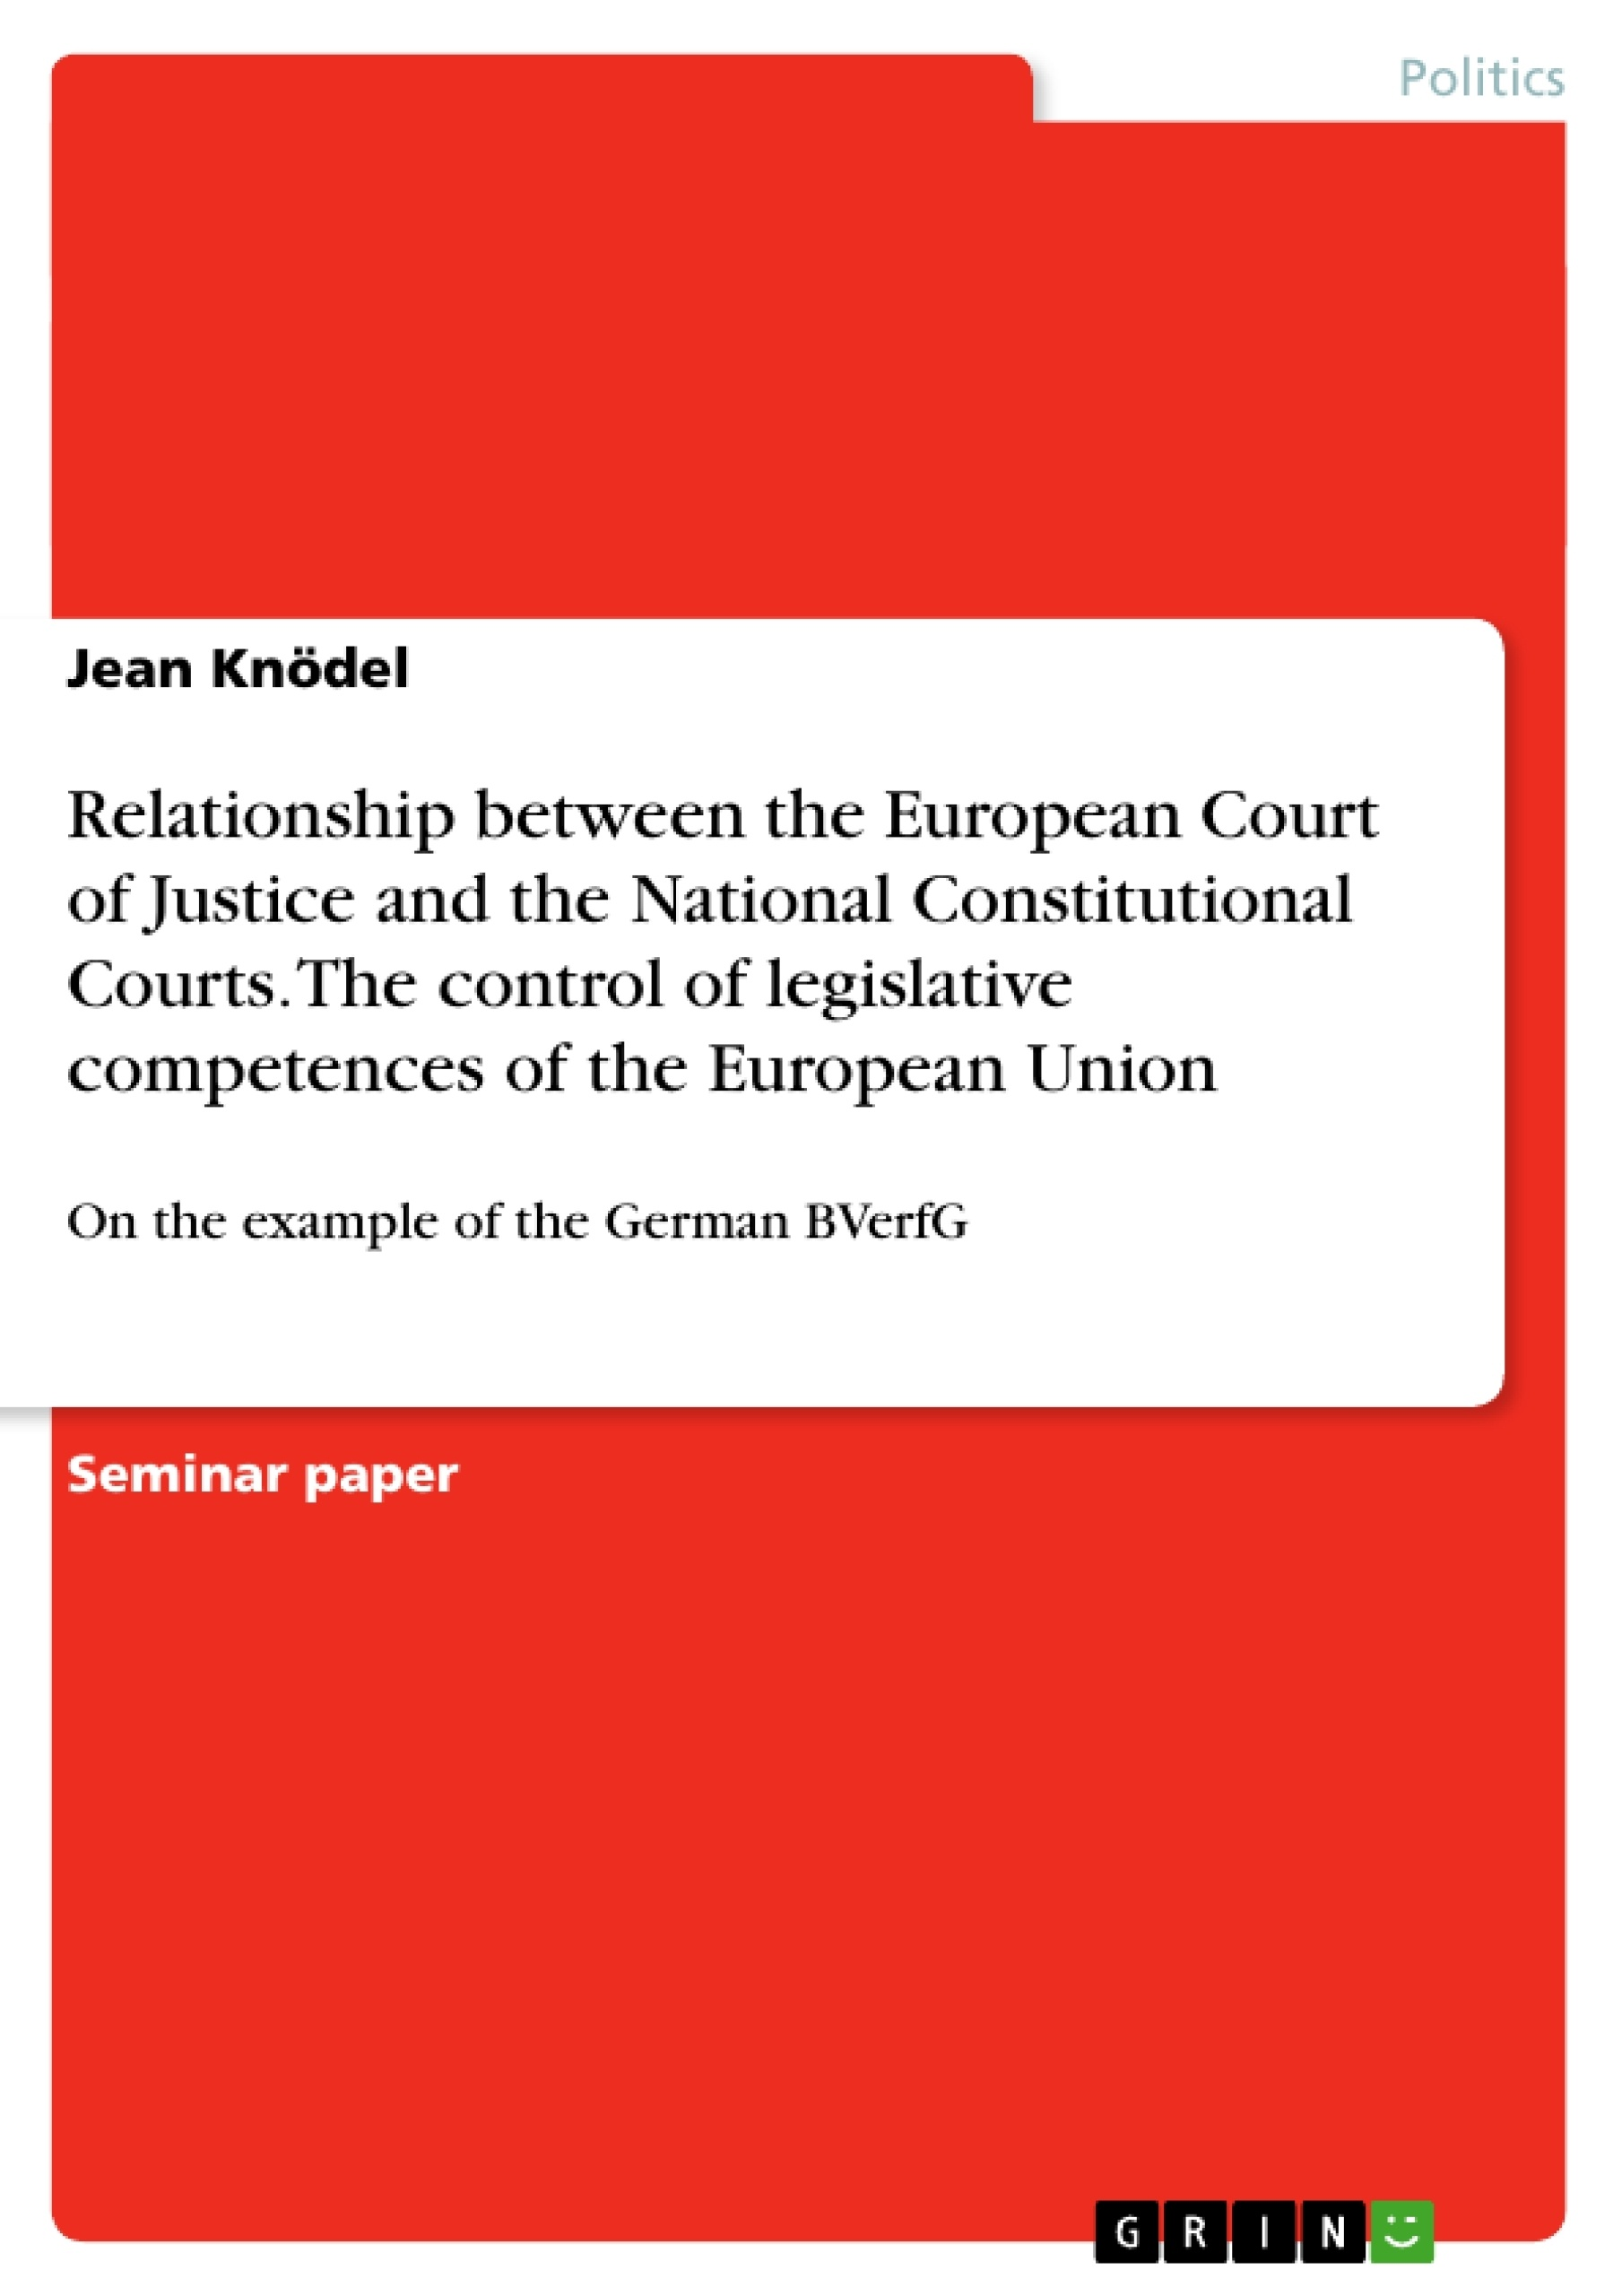 Title: Relationship between the European Court of Justice and the National Constitutional Courts. The control of legislative competences of the European Union